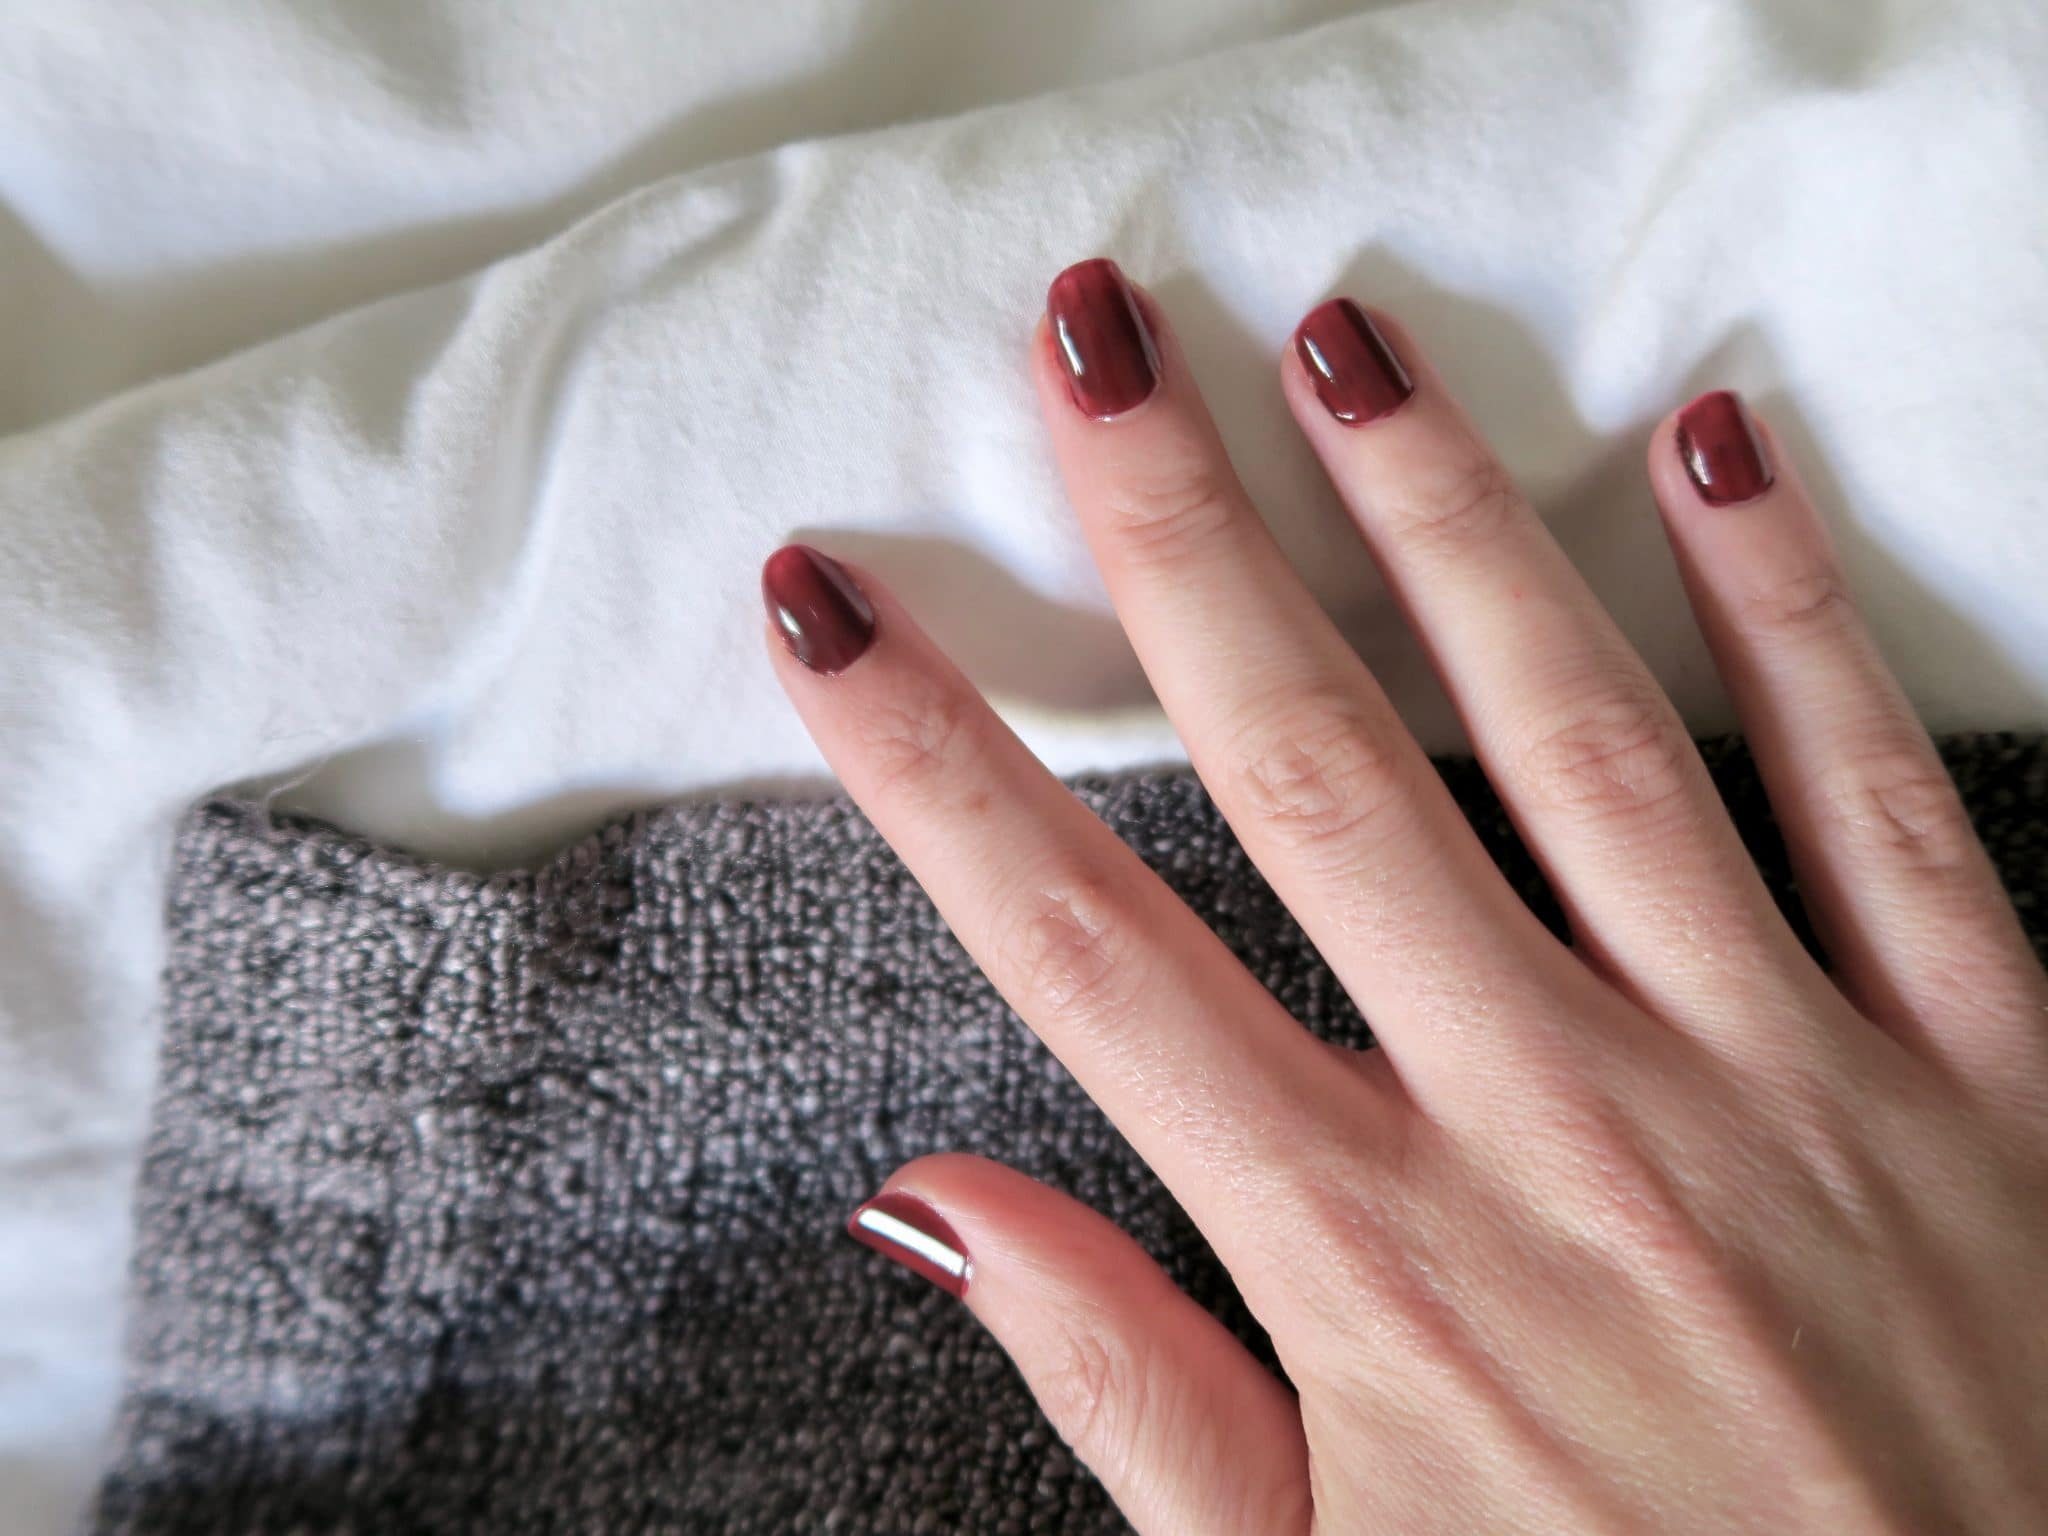 The Natural Nail Polish Myth | Curiously Conscious